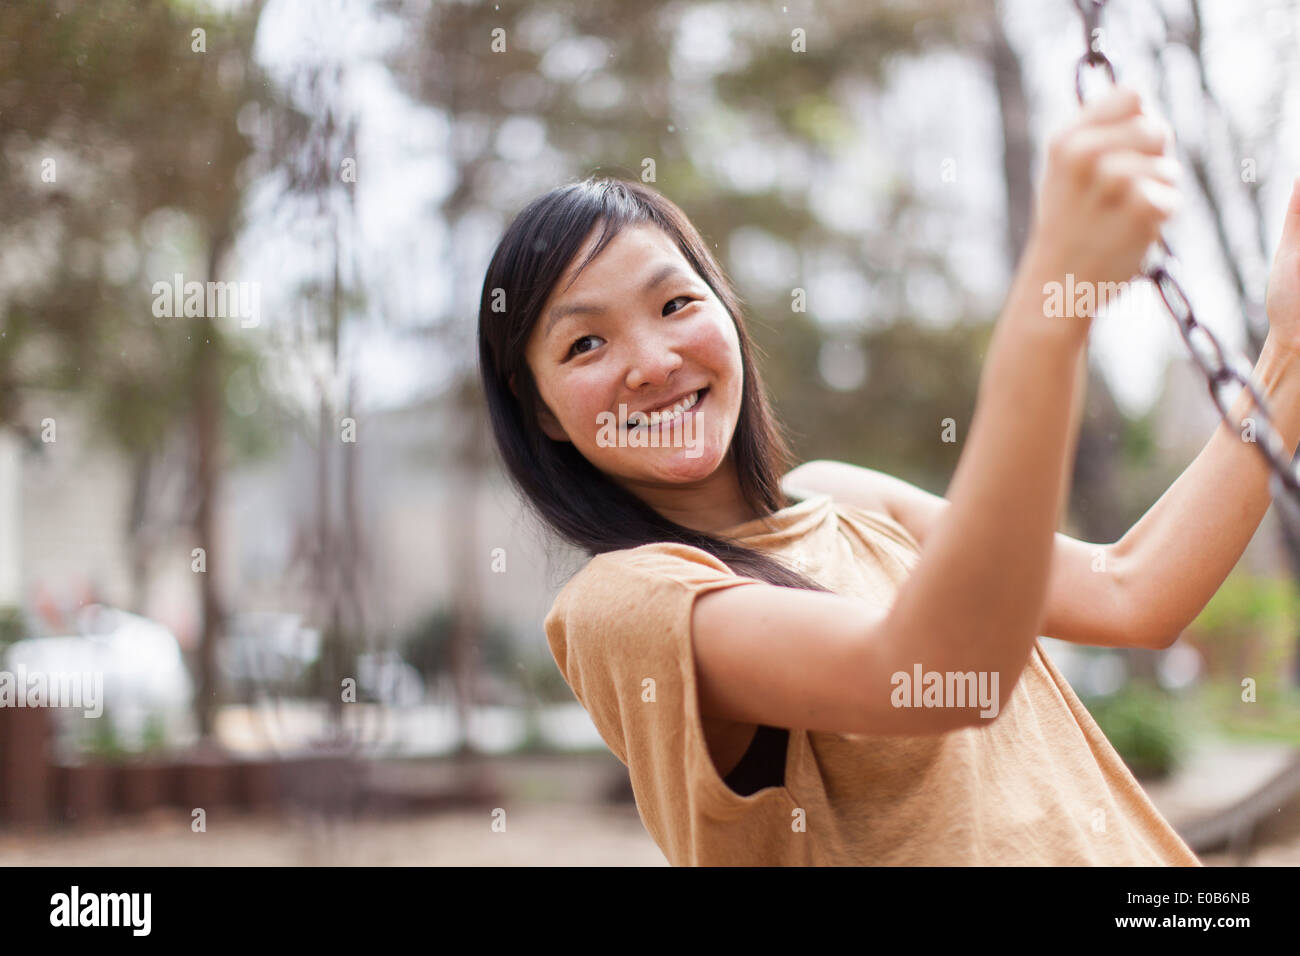 Mid adult woman swinging in city park - Stock Image